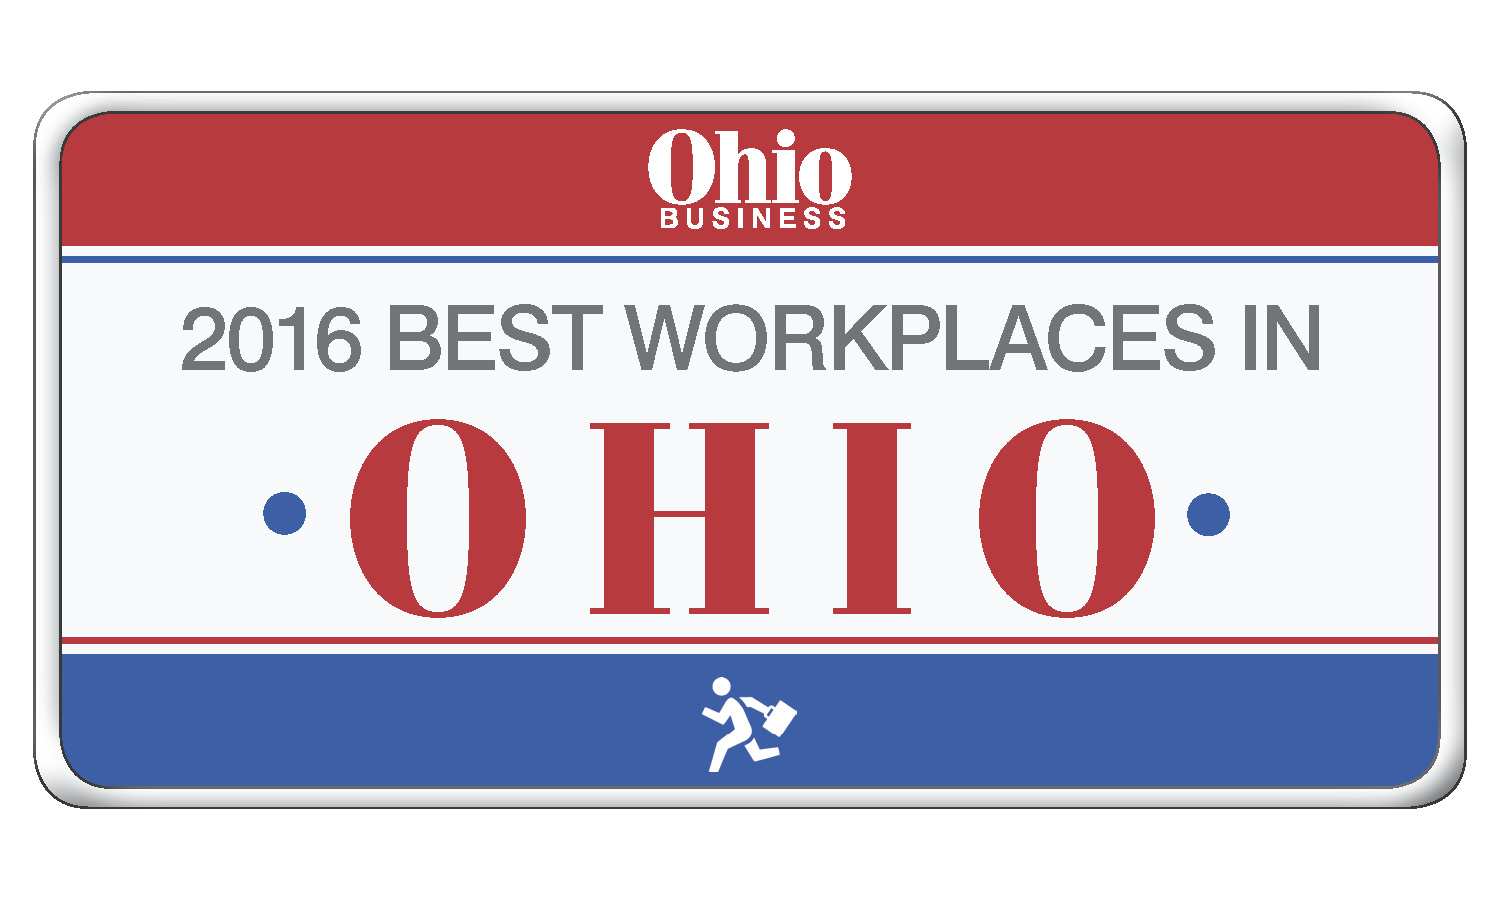 2016 Best Workplaces Award Logo